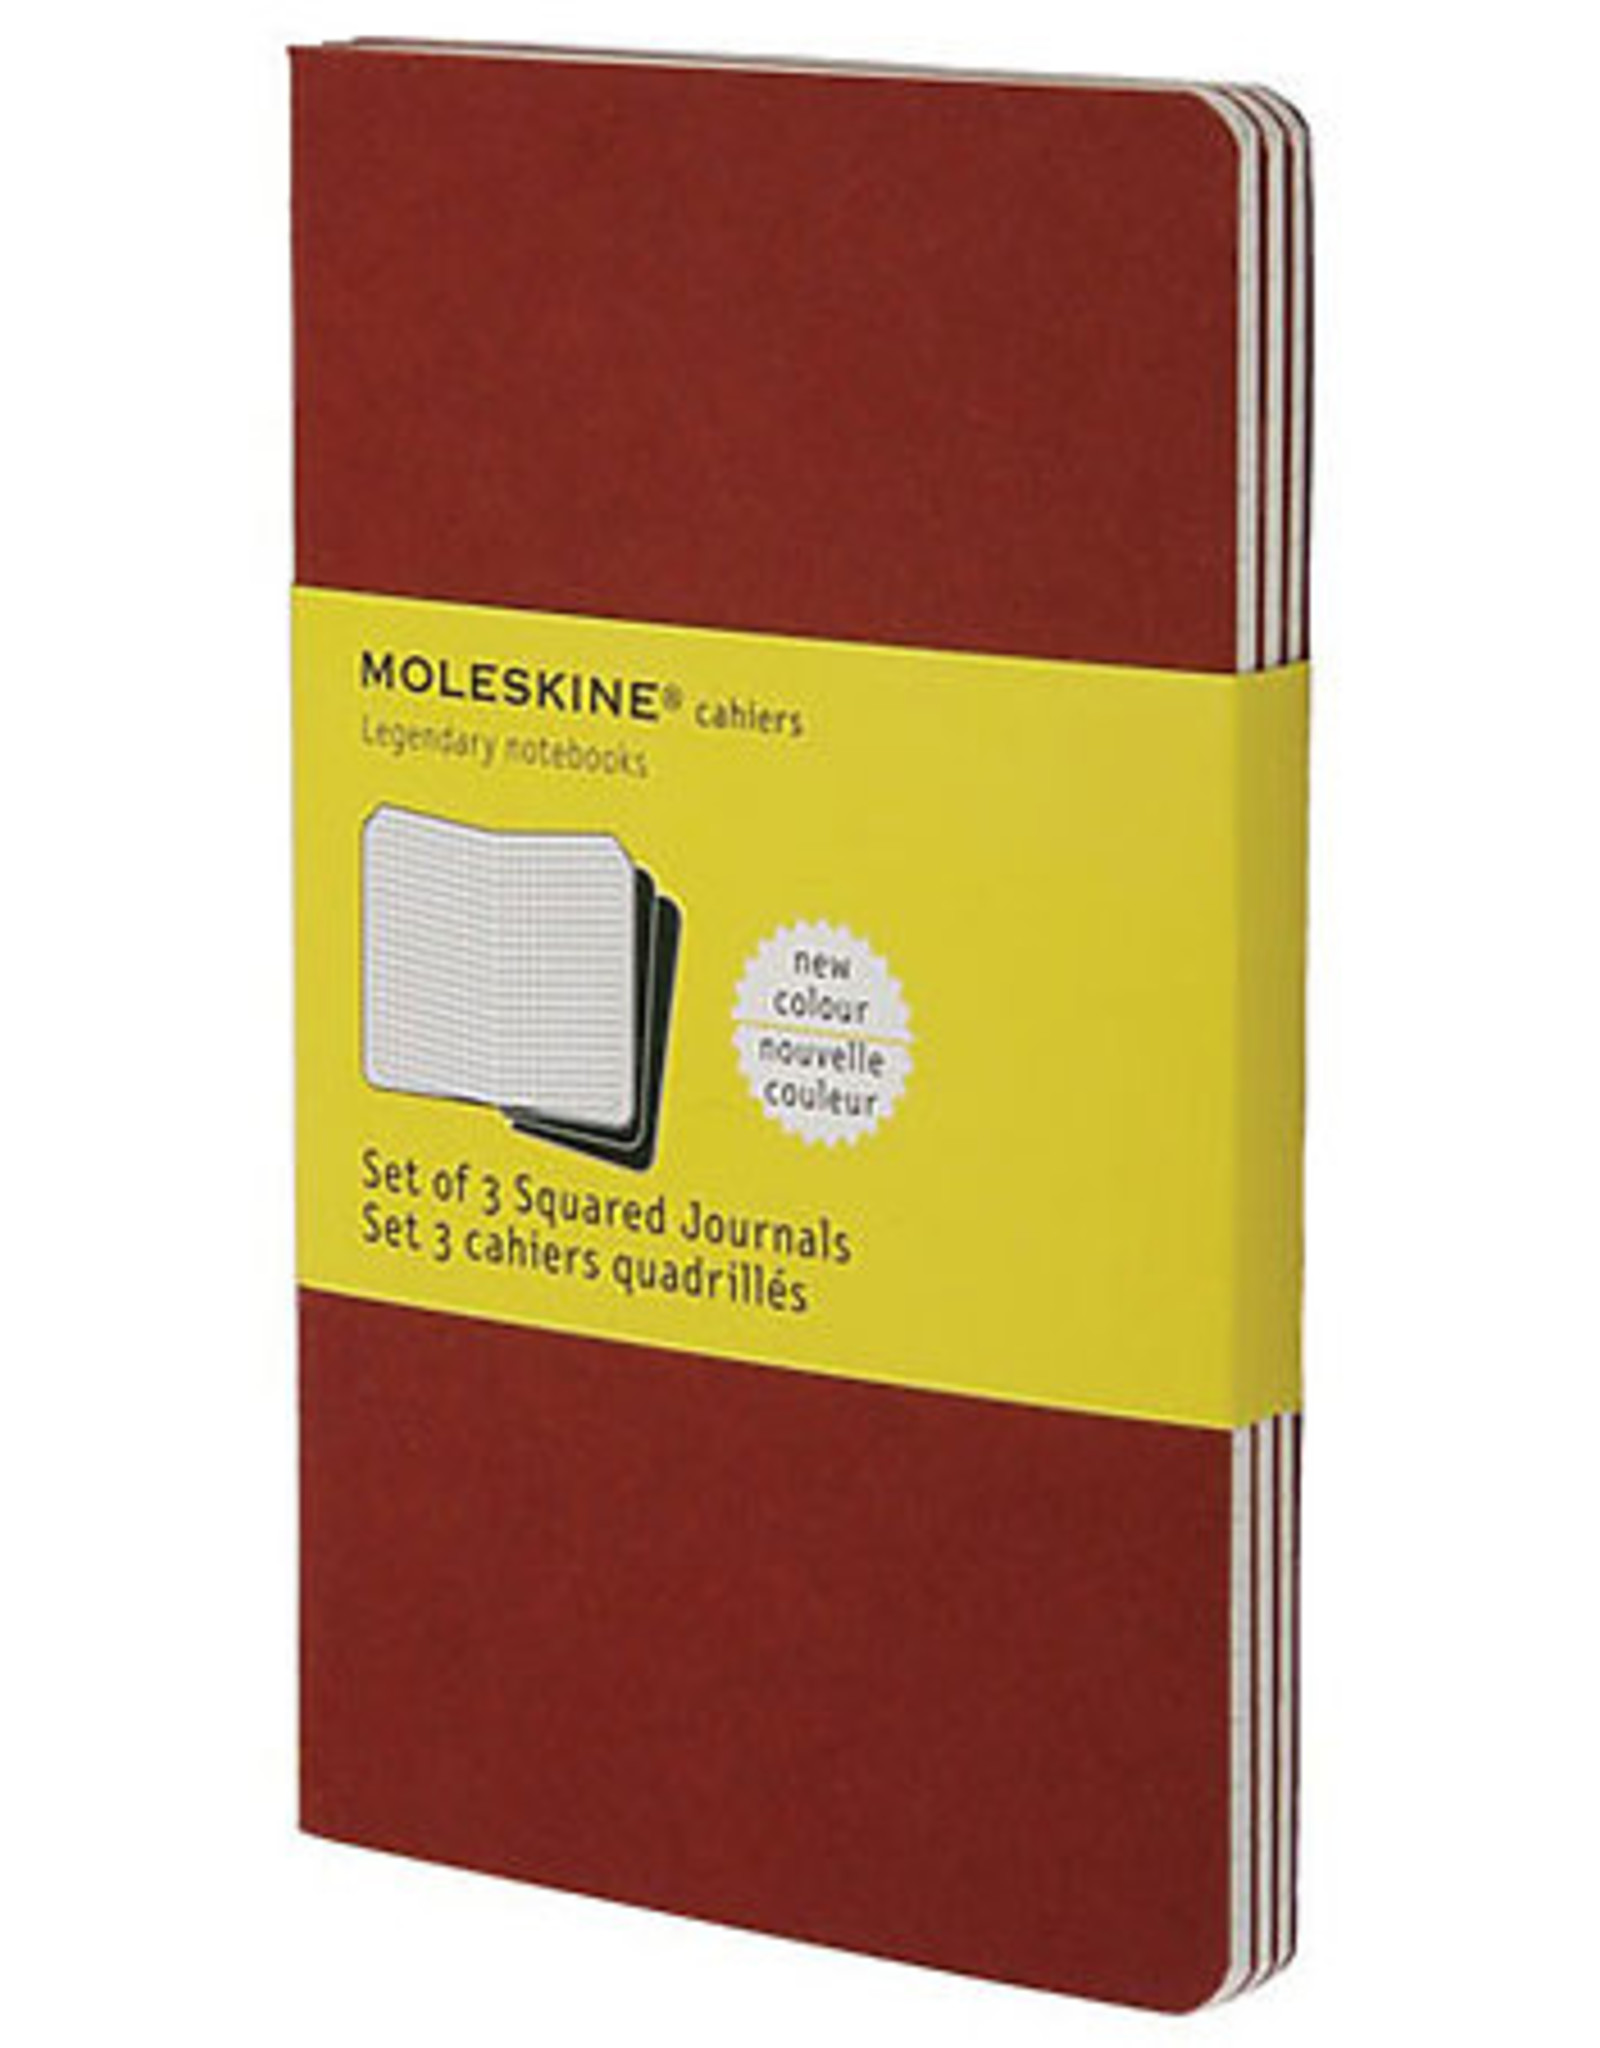 Moleskine Cahiers Set of 3 Red Plain